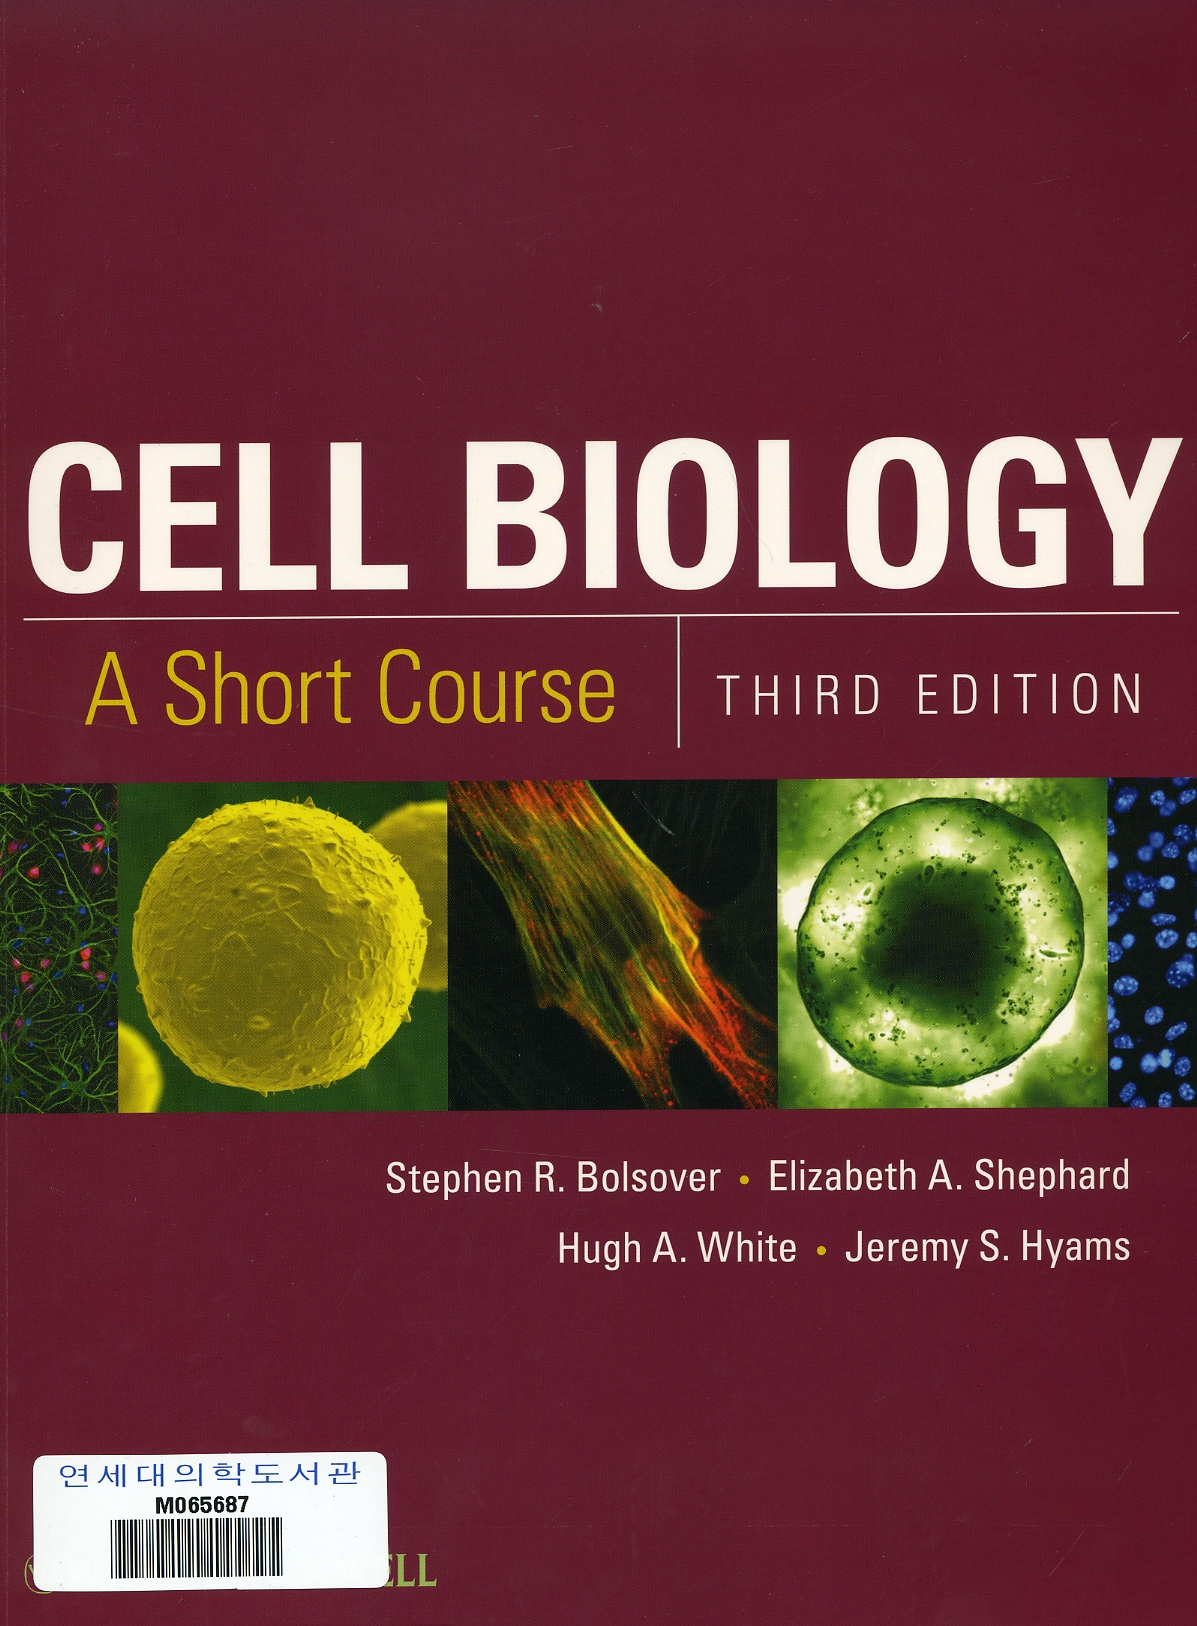 Cell biology : a short course